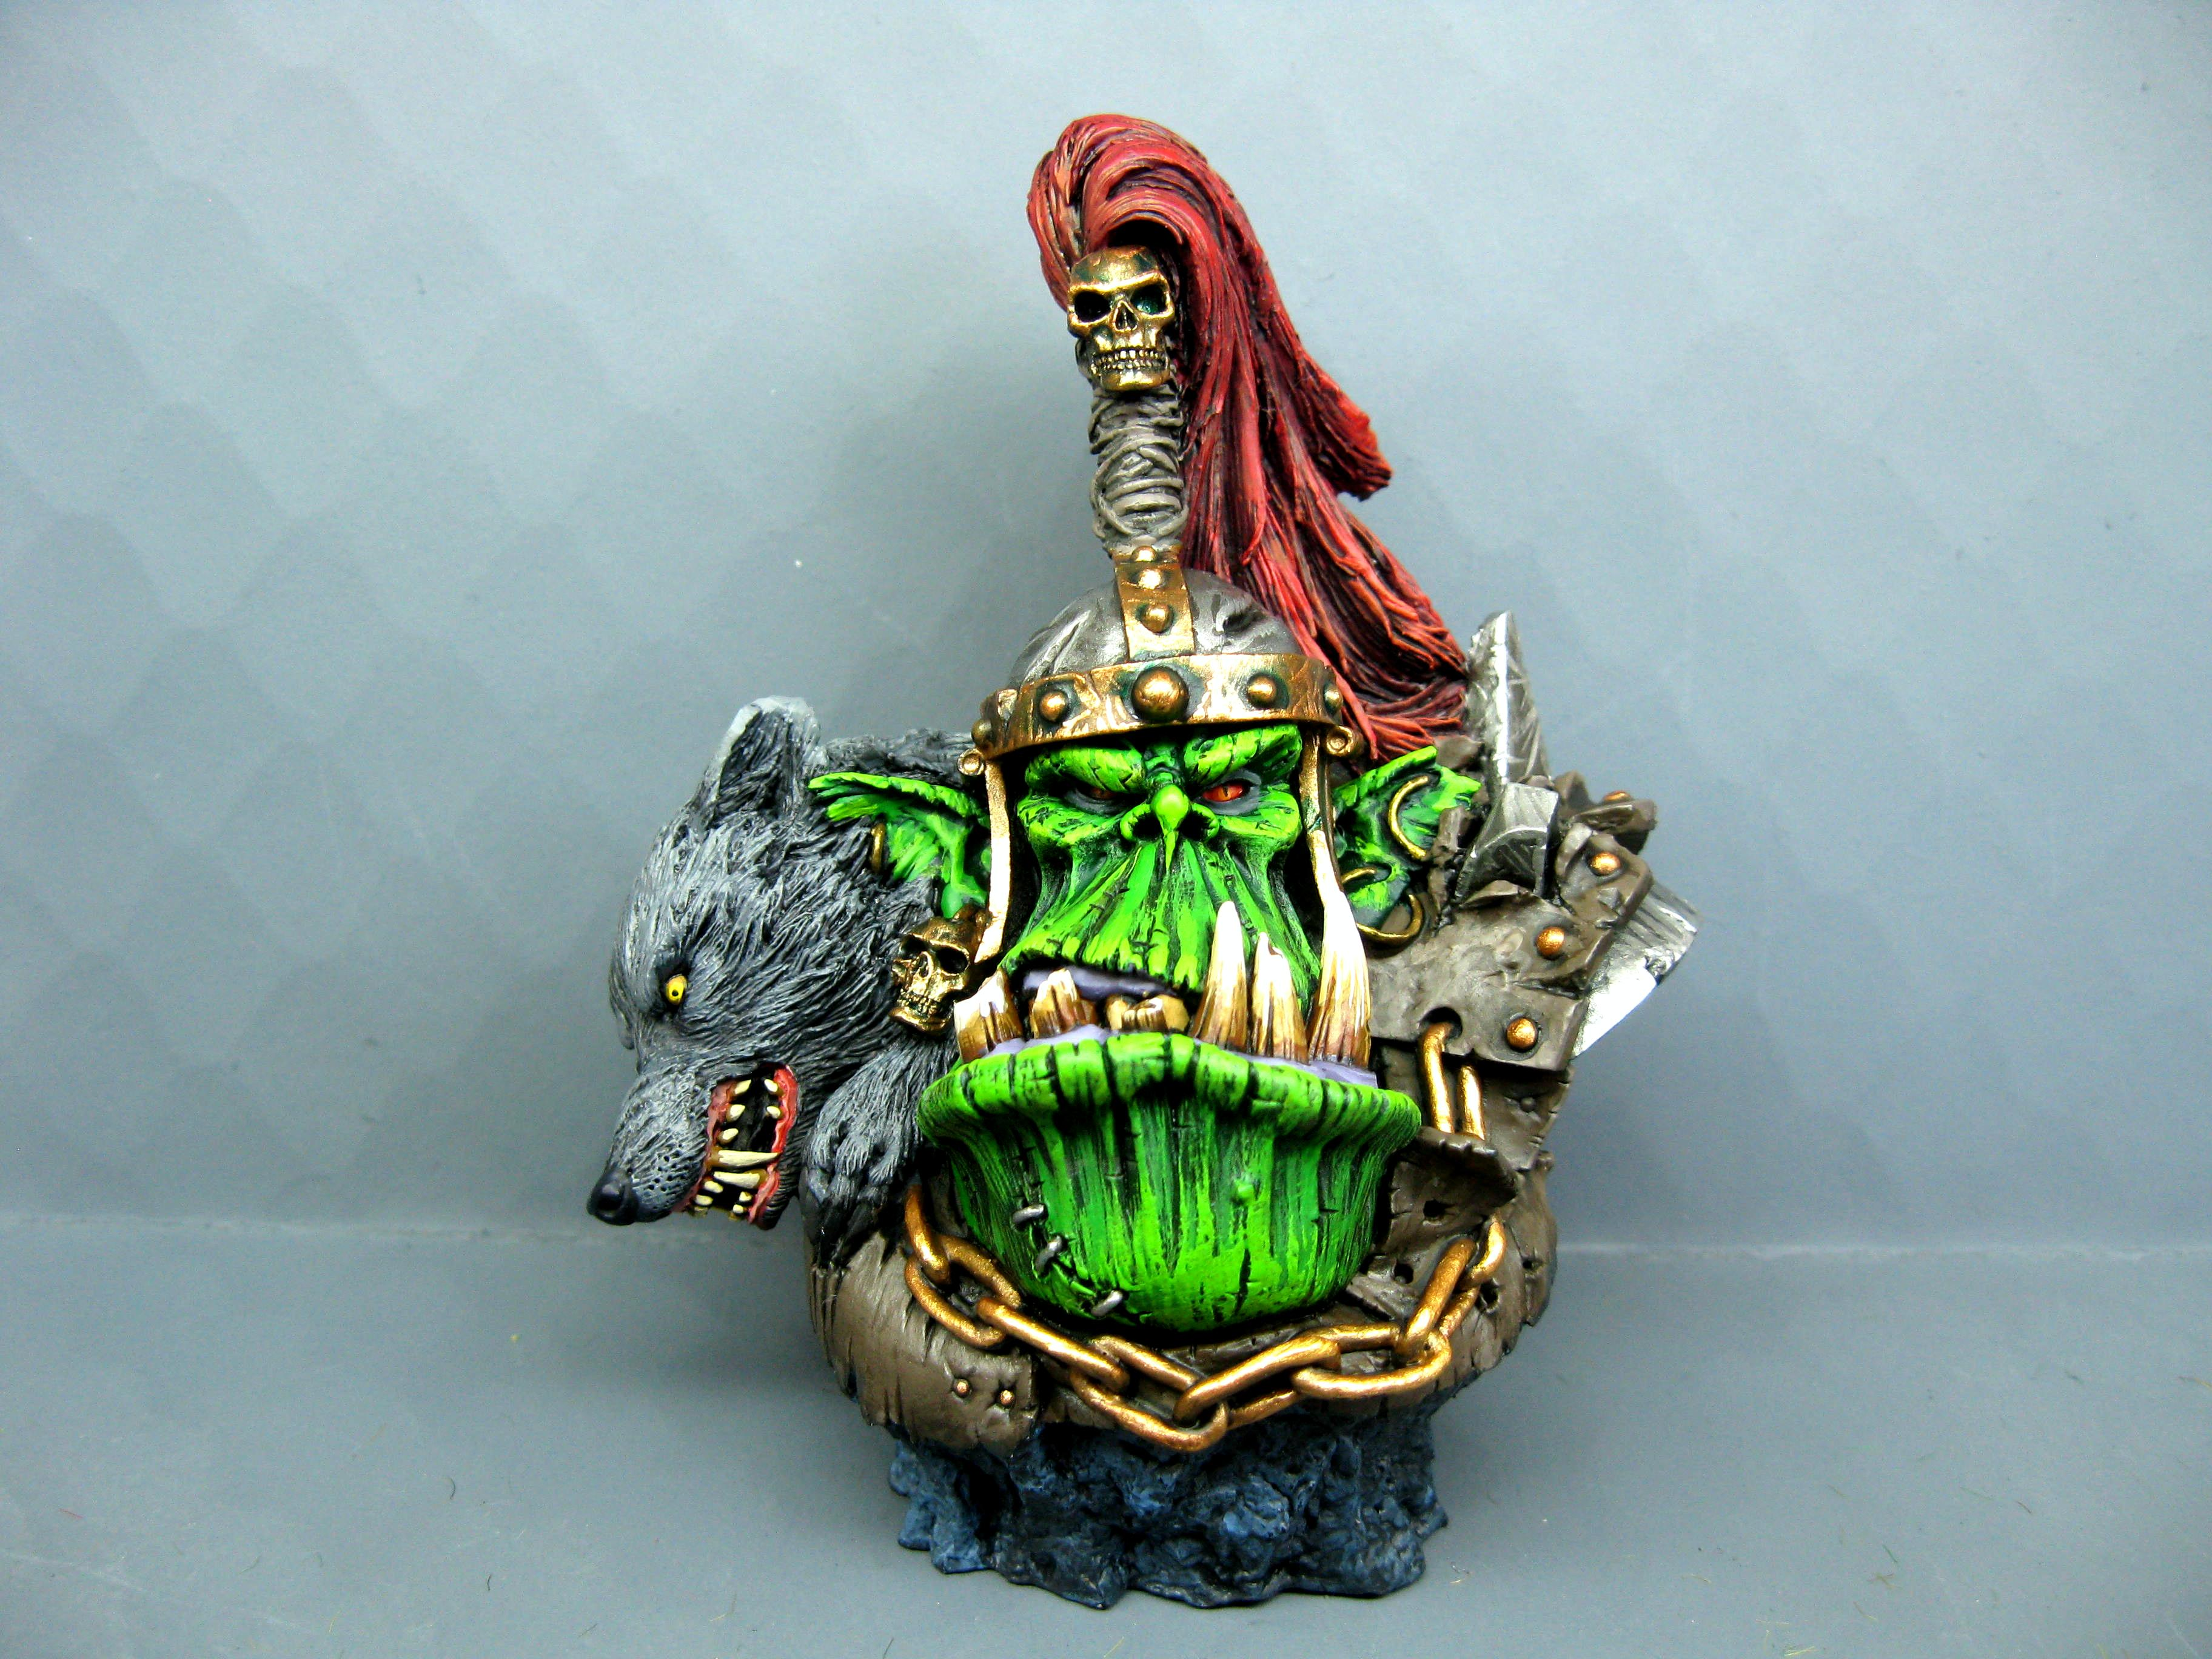 Goblins, Gobos, Orcs, Orcs And Goblins, Orks, Pro Painted, Rpg, Sculpture, Warhammer Fantasy